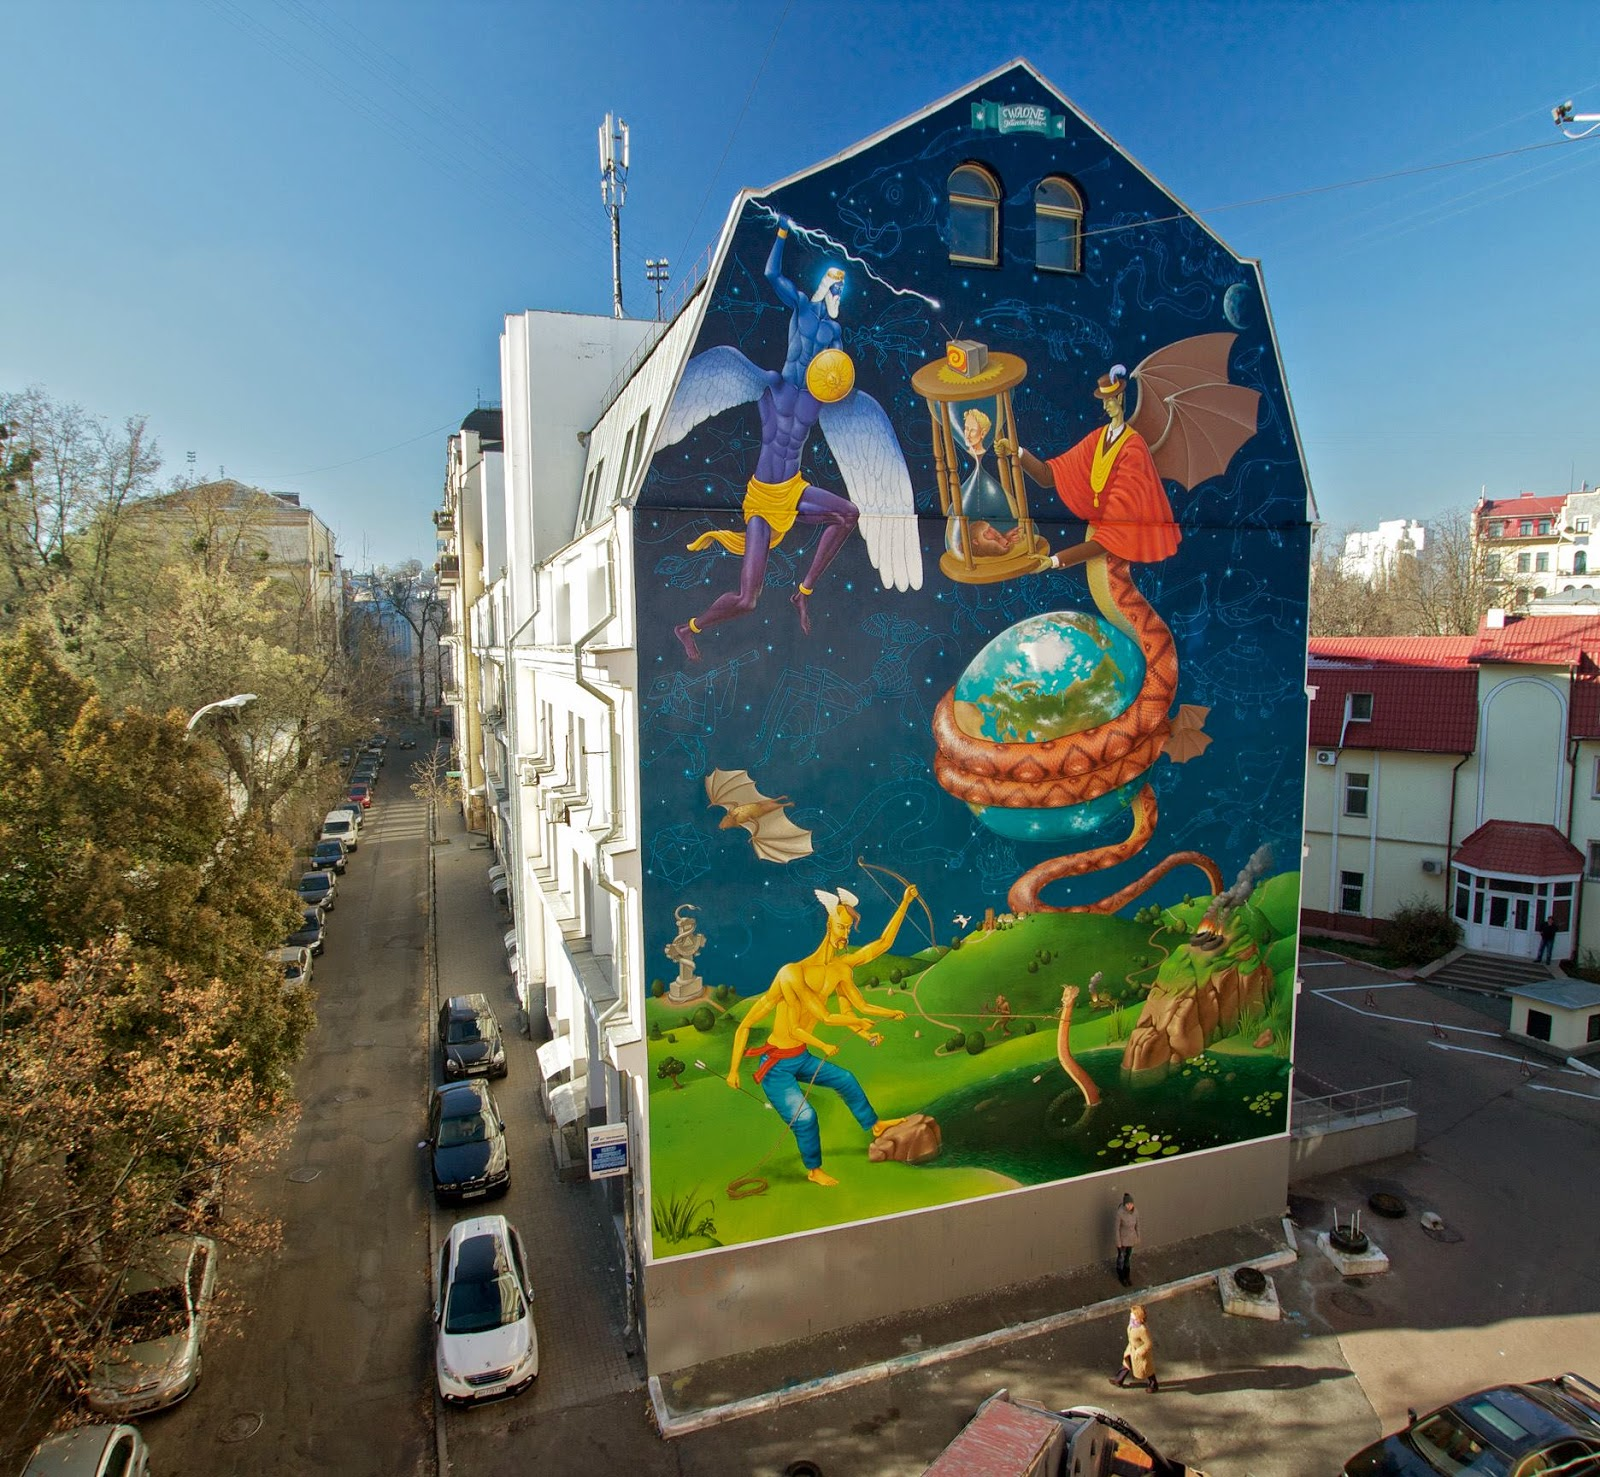 Waone from Interesni Kazki is back in his hometown of Kiev in Ukraine where he spent about a month working on this new piece.